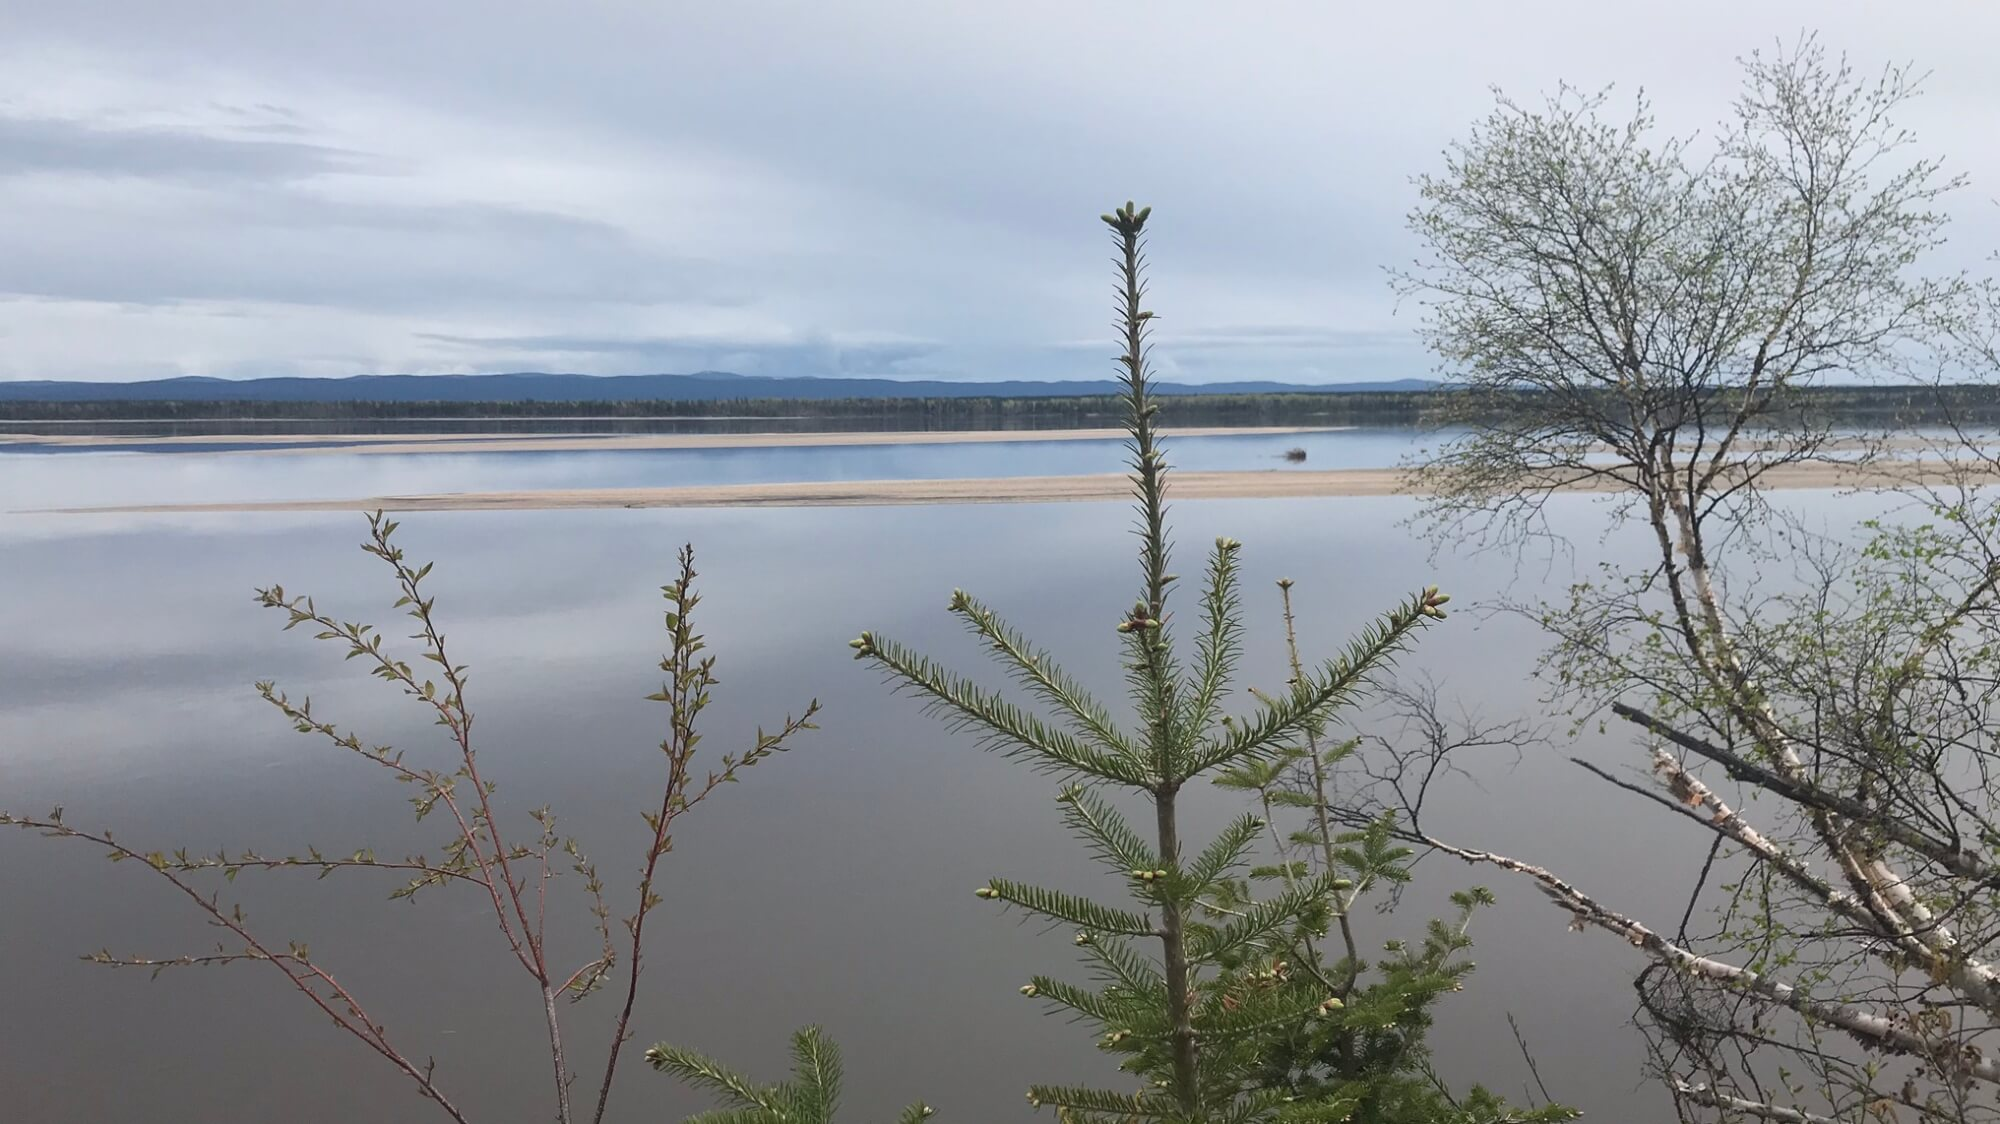 View from Happy Valley-Goose Bay's Birch Island Boardwalk